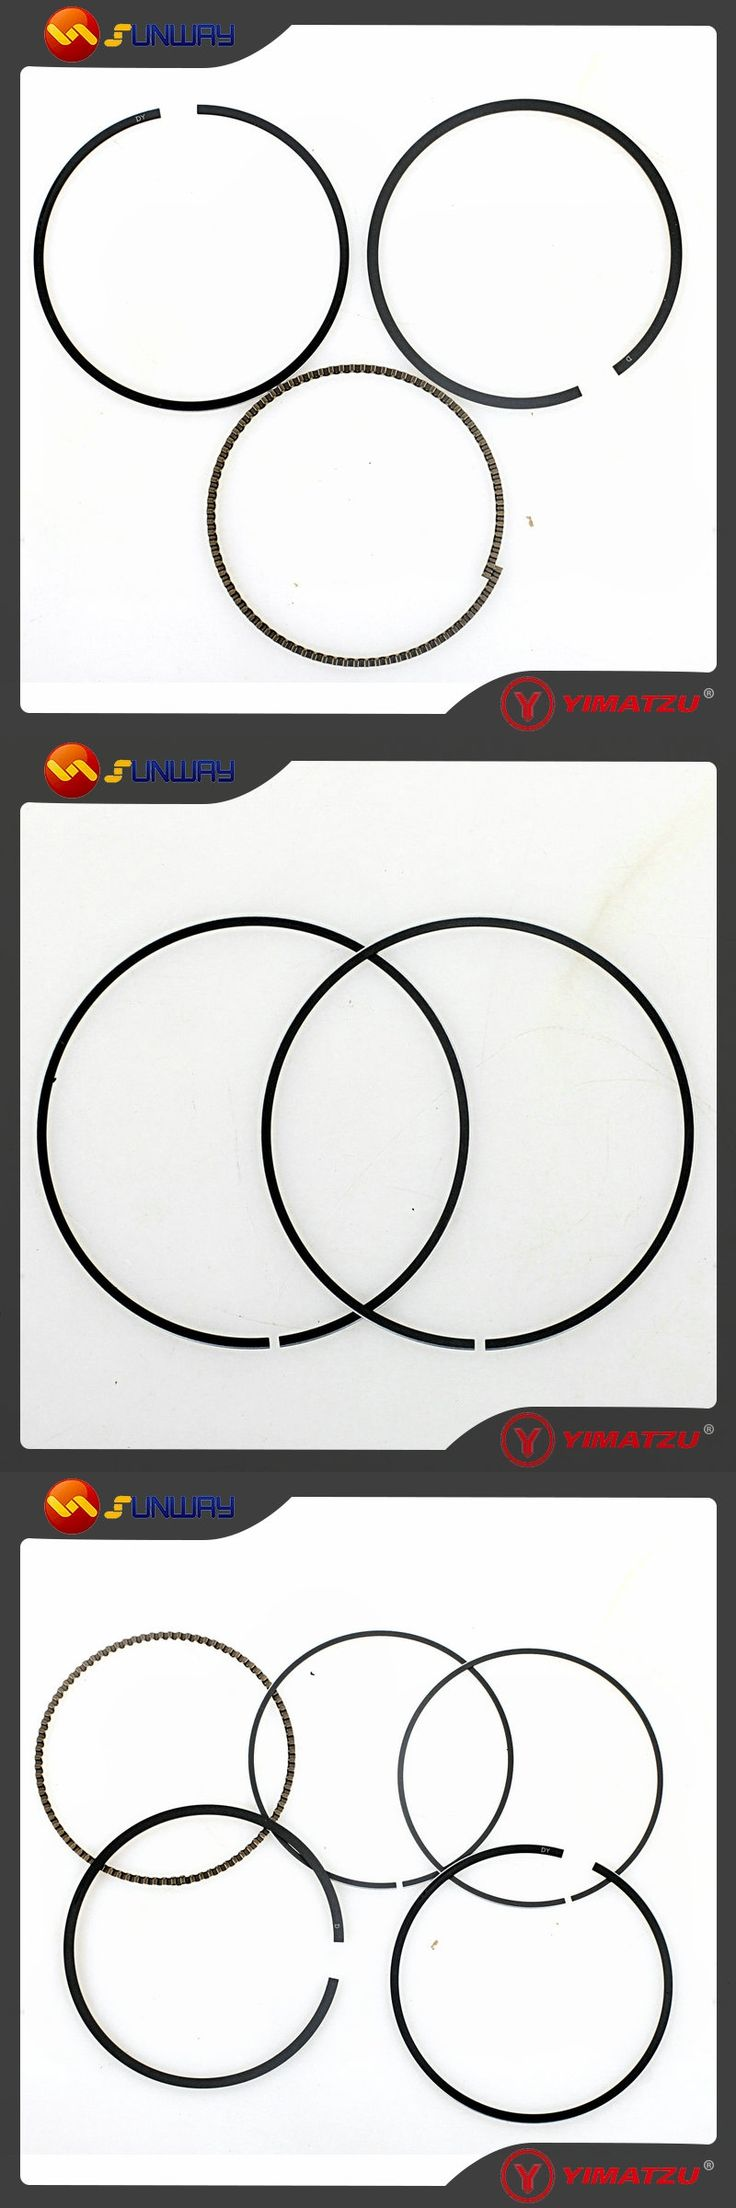 SUNWAY ATV Motorcycle Engine Parts Piston Ring for CFMOTO CF500 X5 CF188 Engine 0180-0400A0 Free Shipping By E-packet